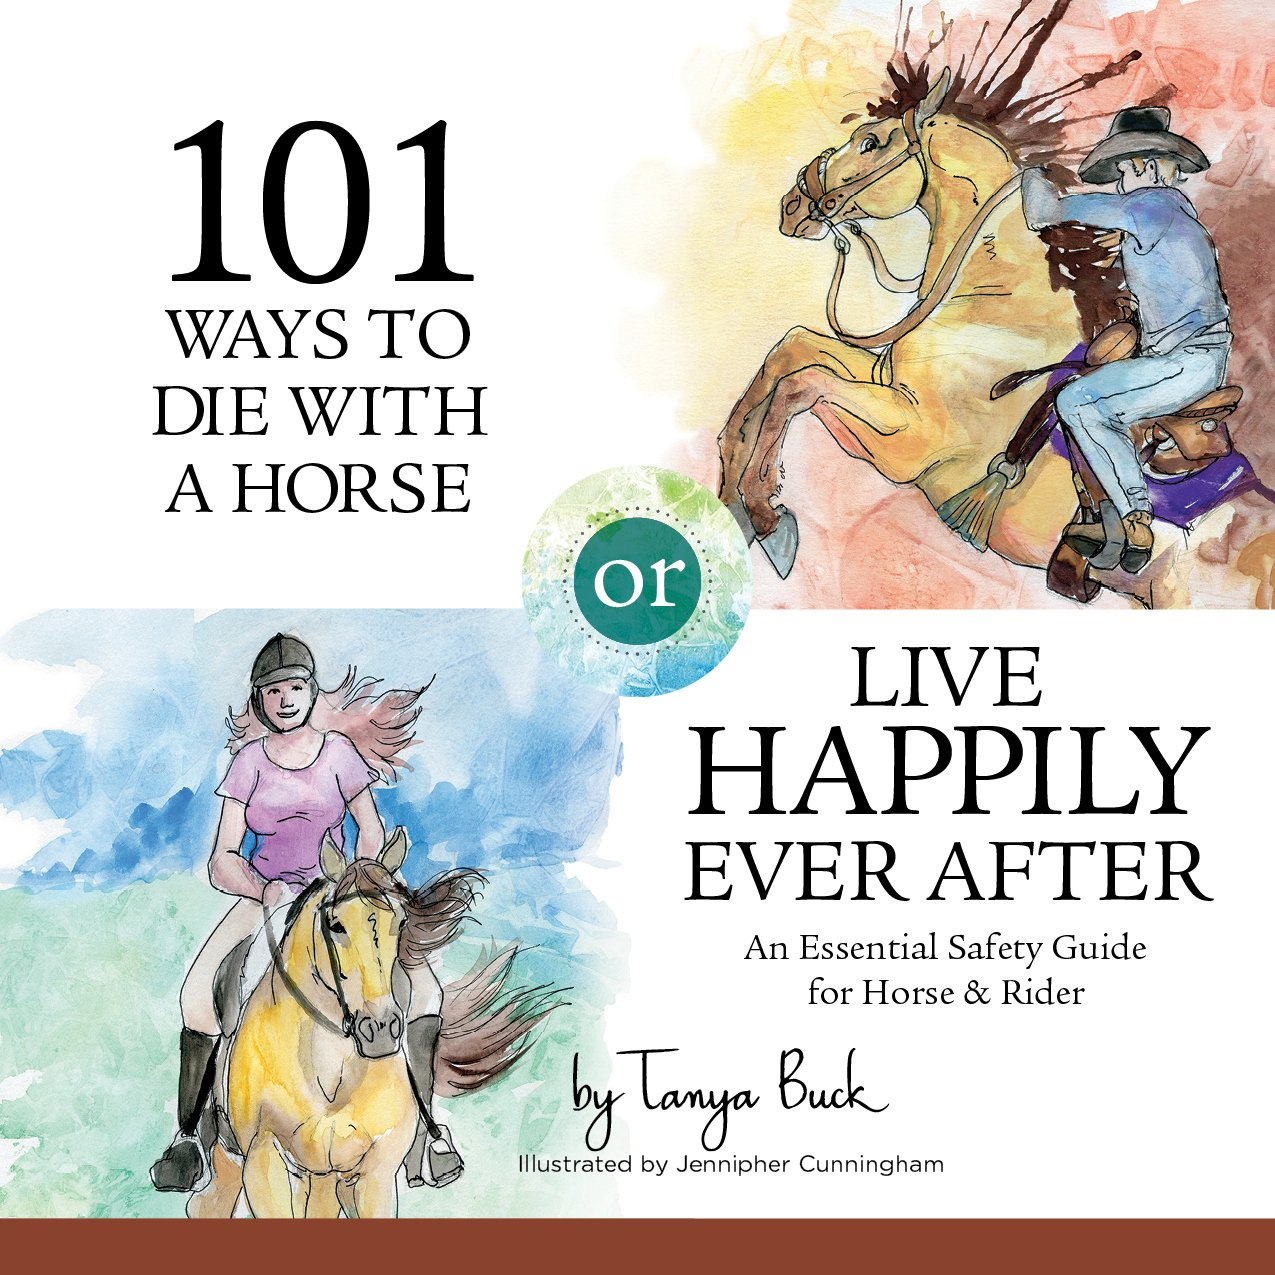 101 Ways to Die with a Horse or Live Happily Ever After: An Essential Safety Guide for Horse & Rider (English Edition)